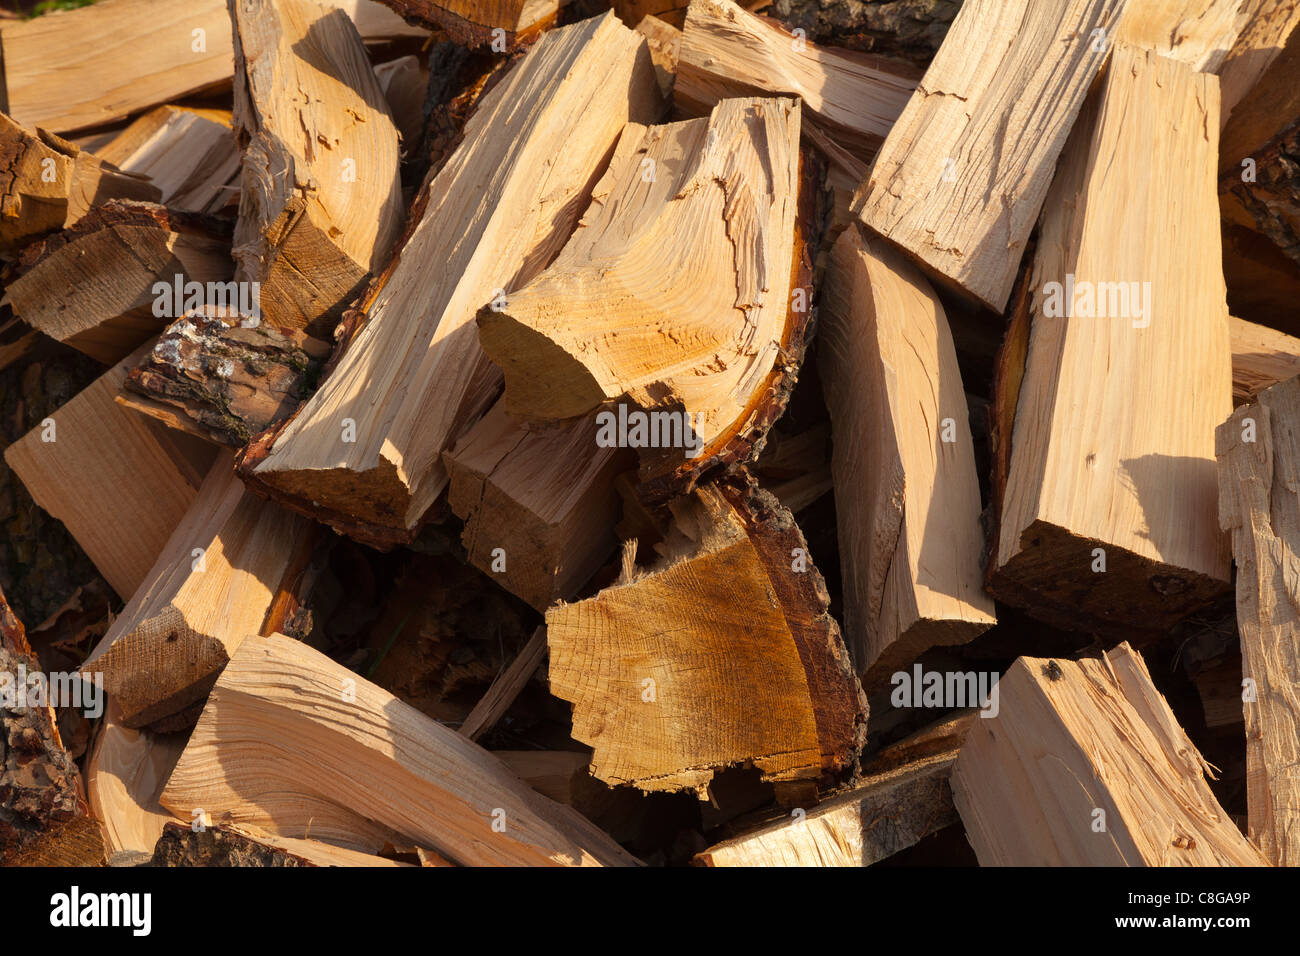 Wood burning fuel from a old tree, piles of logs to be split for open fires and wood burners to heat homes - Stock Image